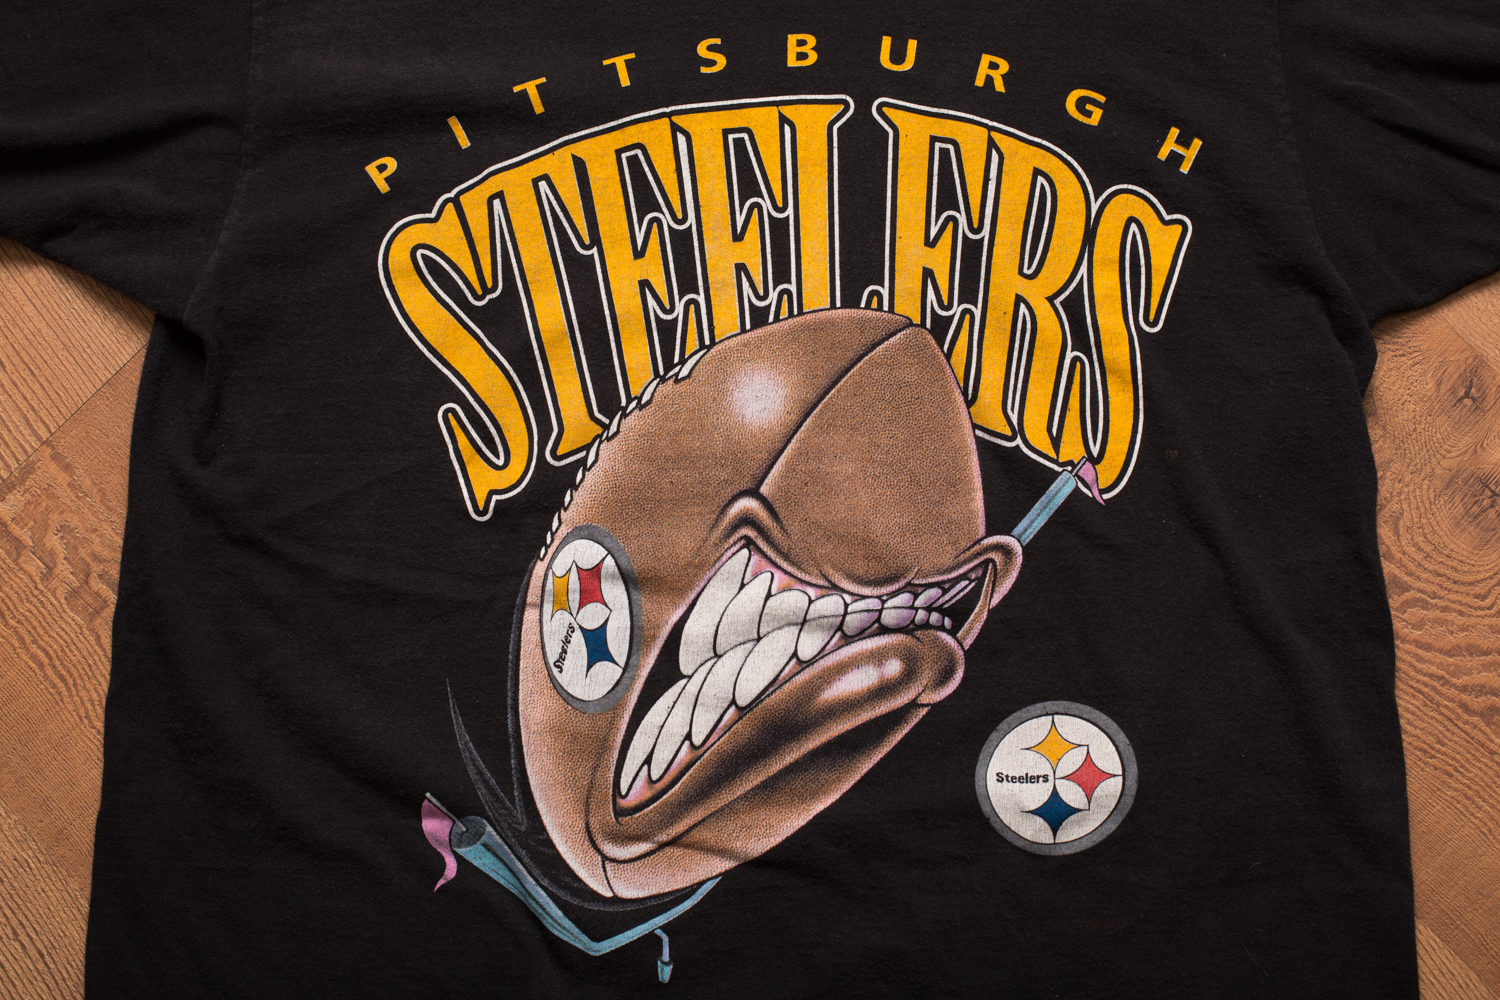 1994 Pittsburgh Steelers T-Shirt